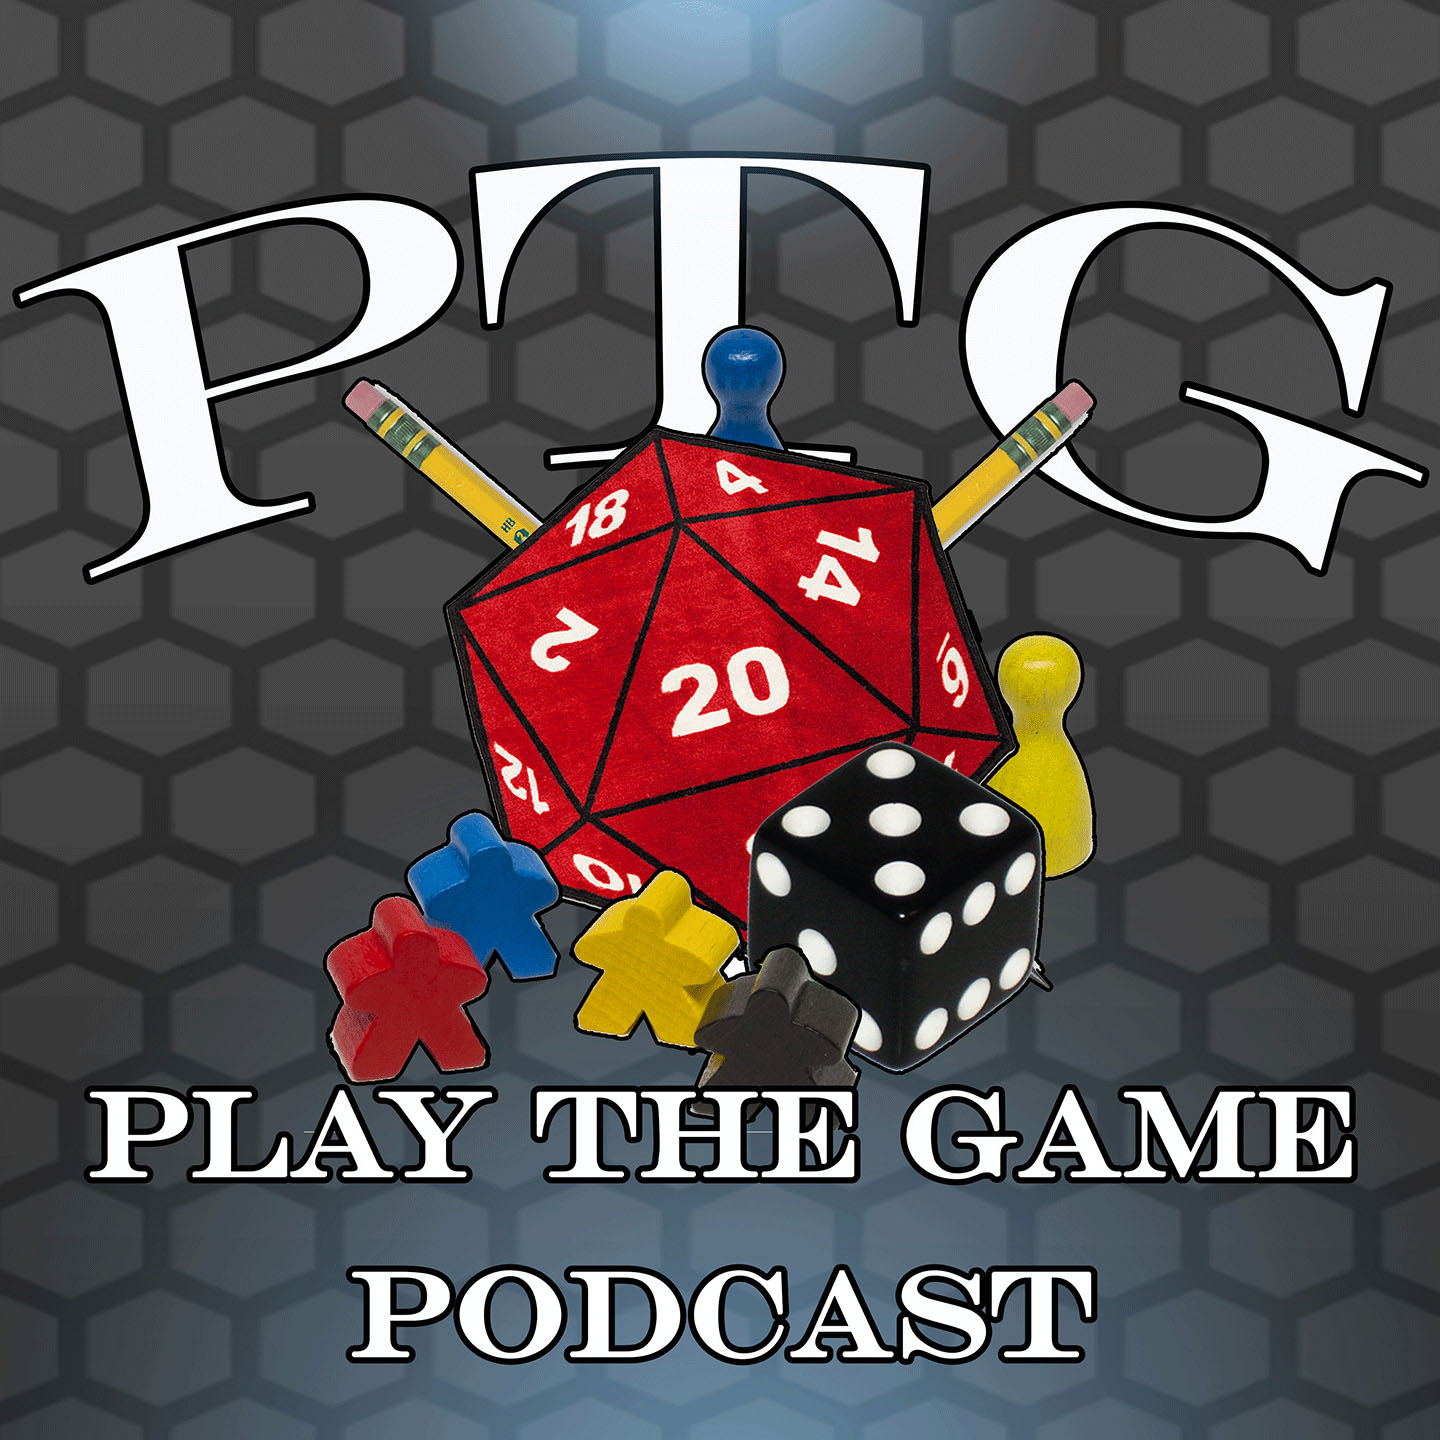 Play The Game Podcast